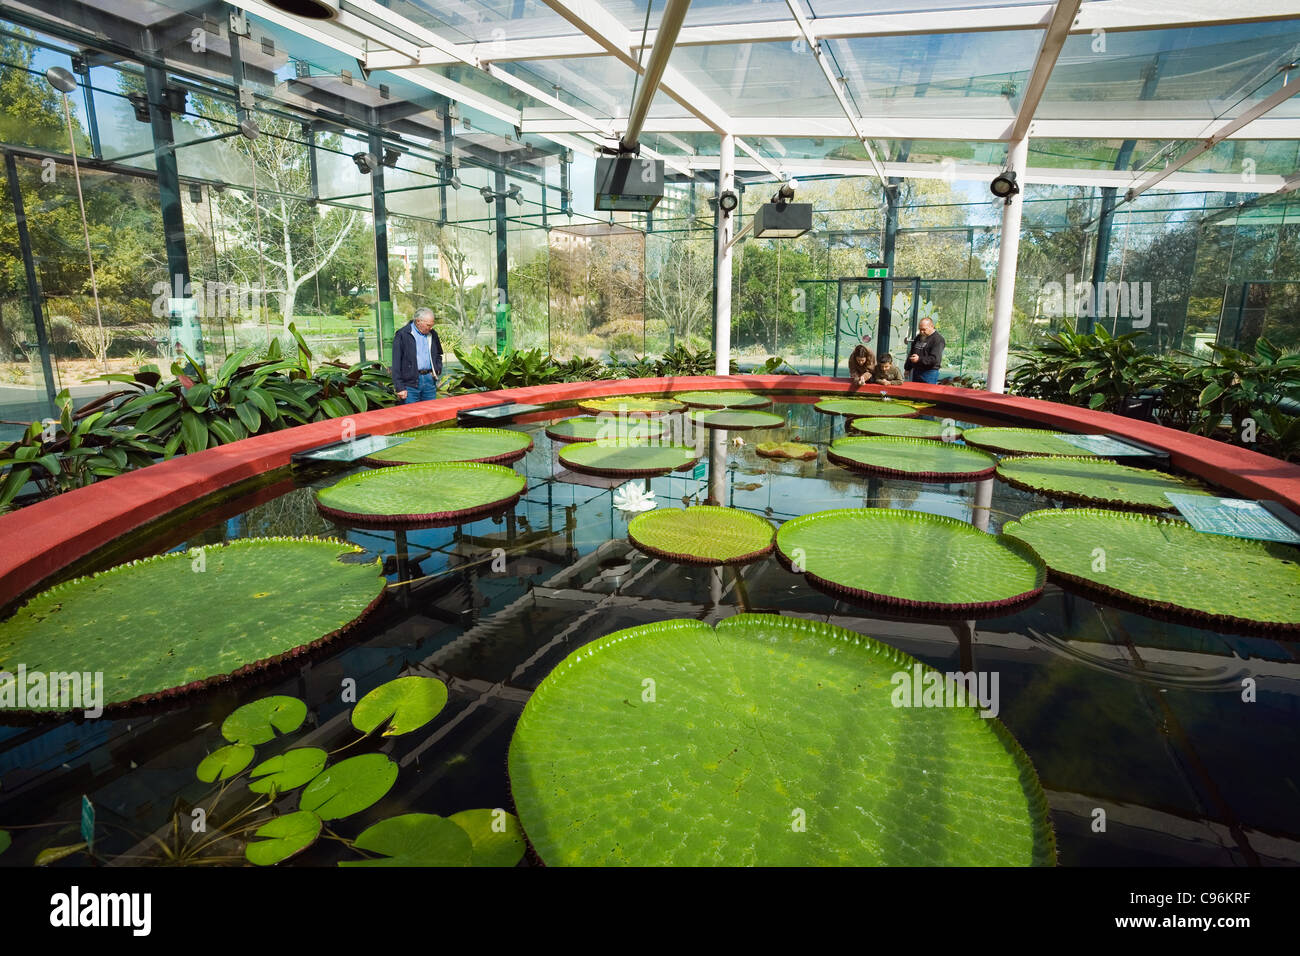 Where Buy Pond Lilies